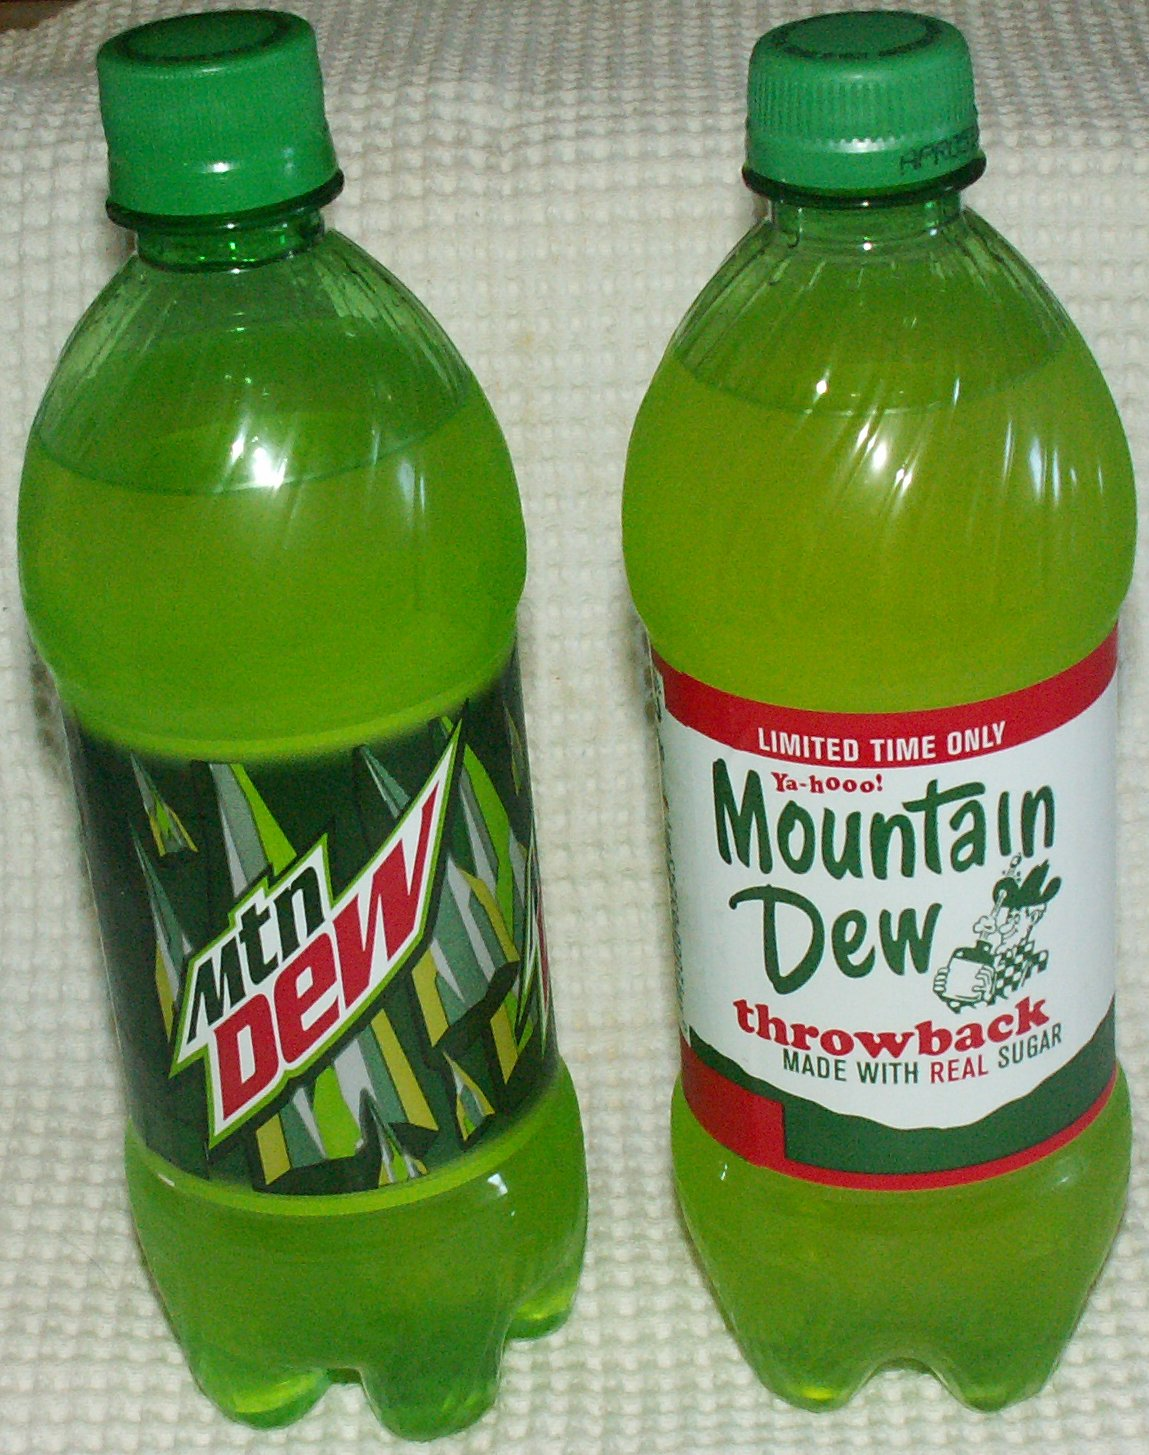 Mountain Dew Throwback Comparison